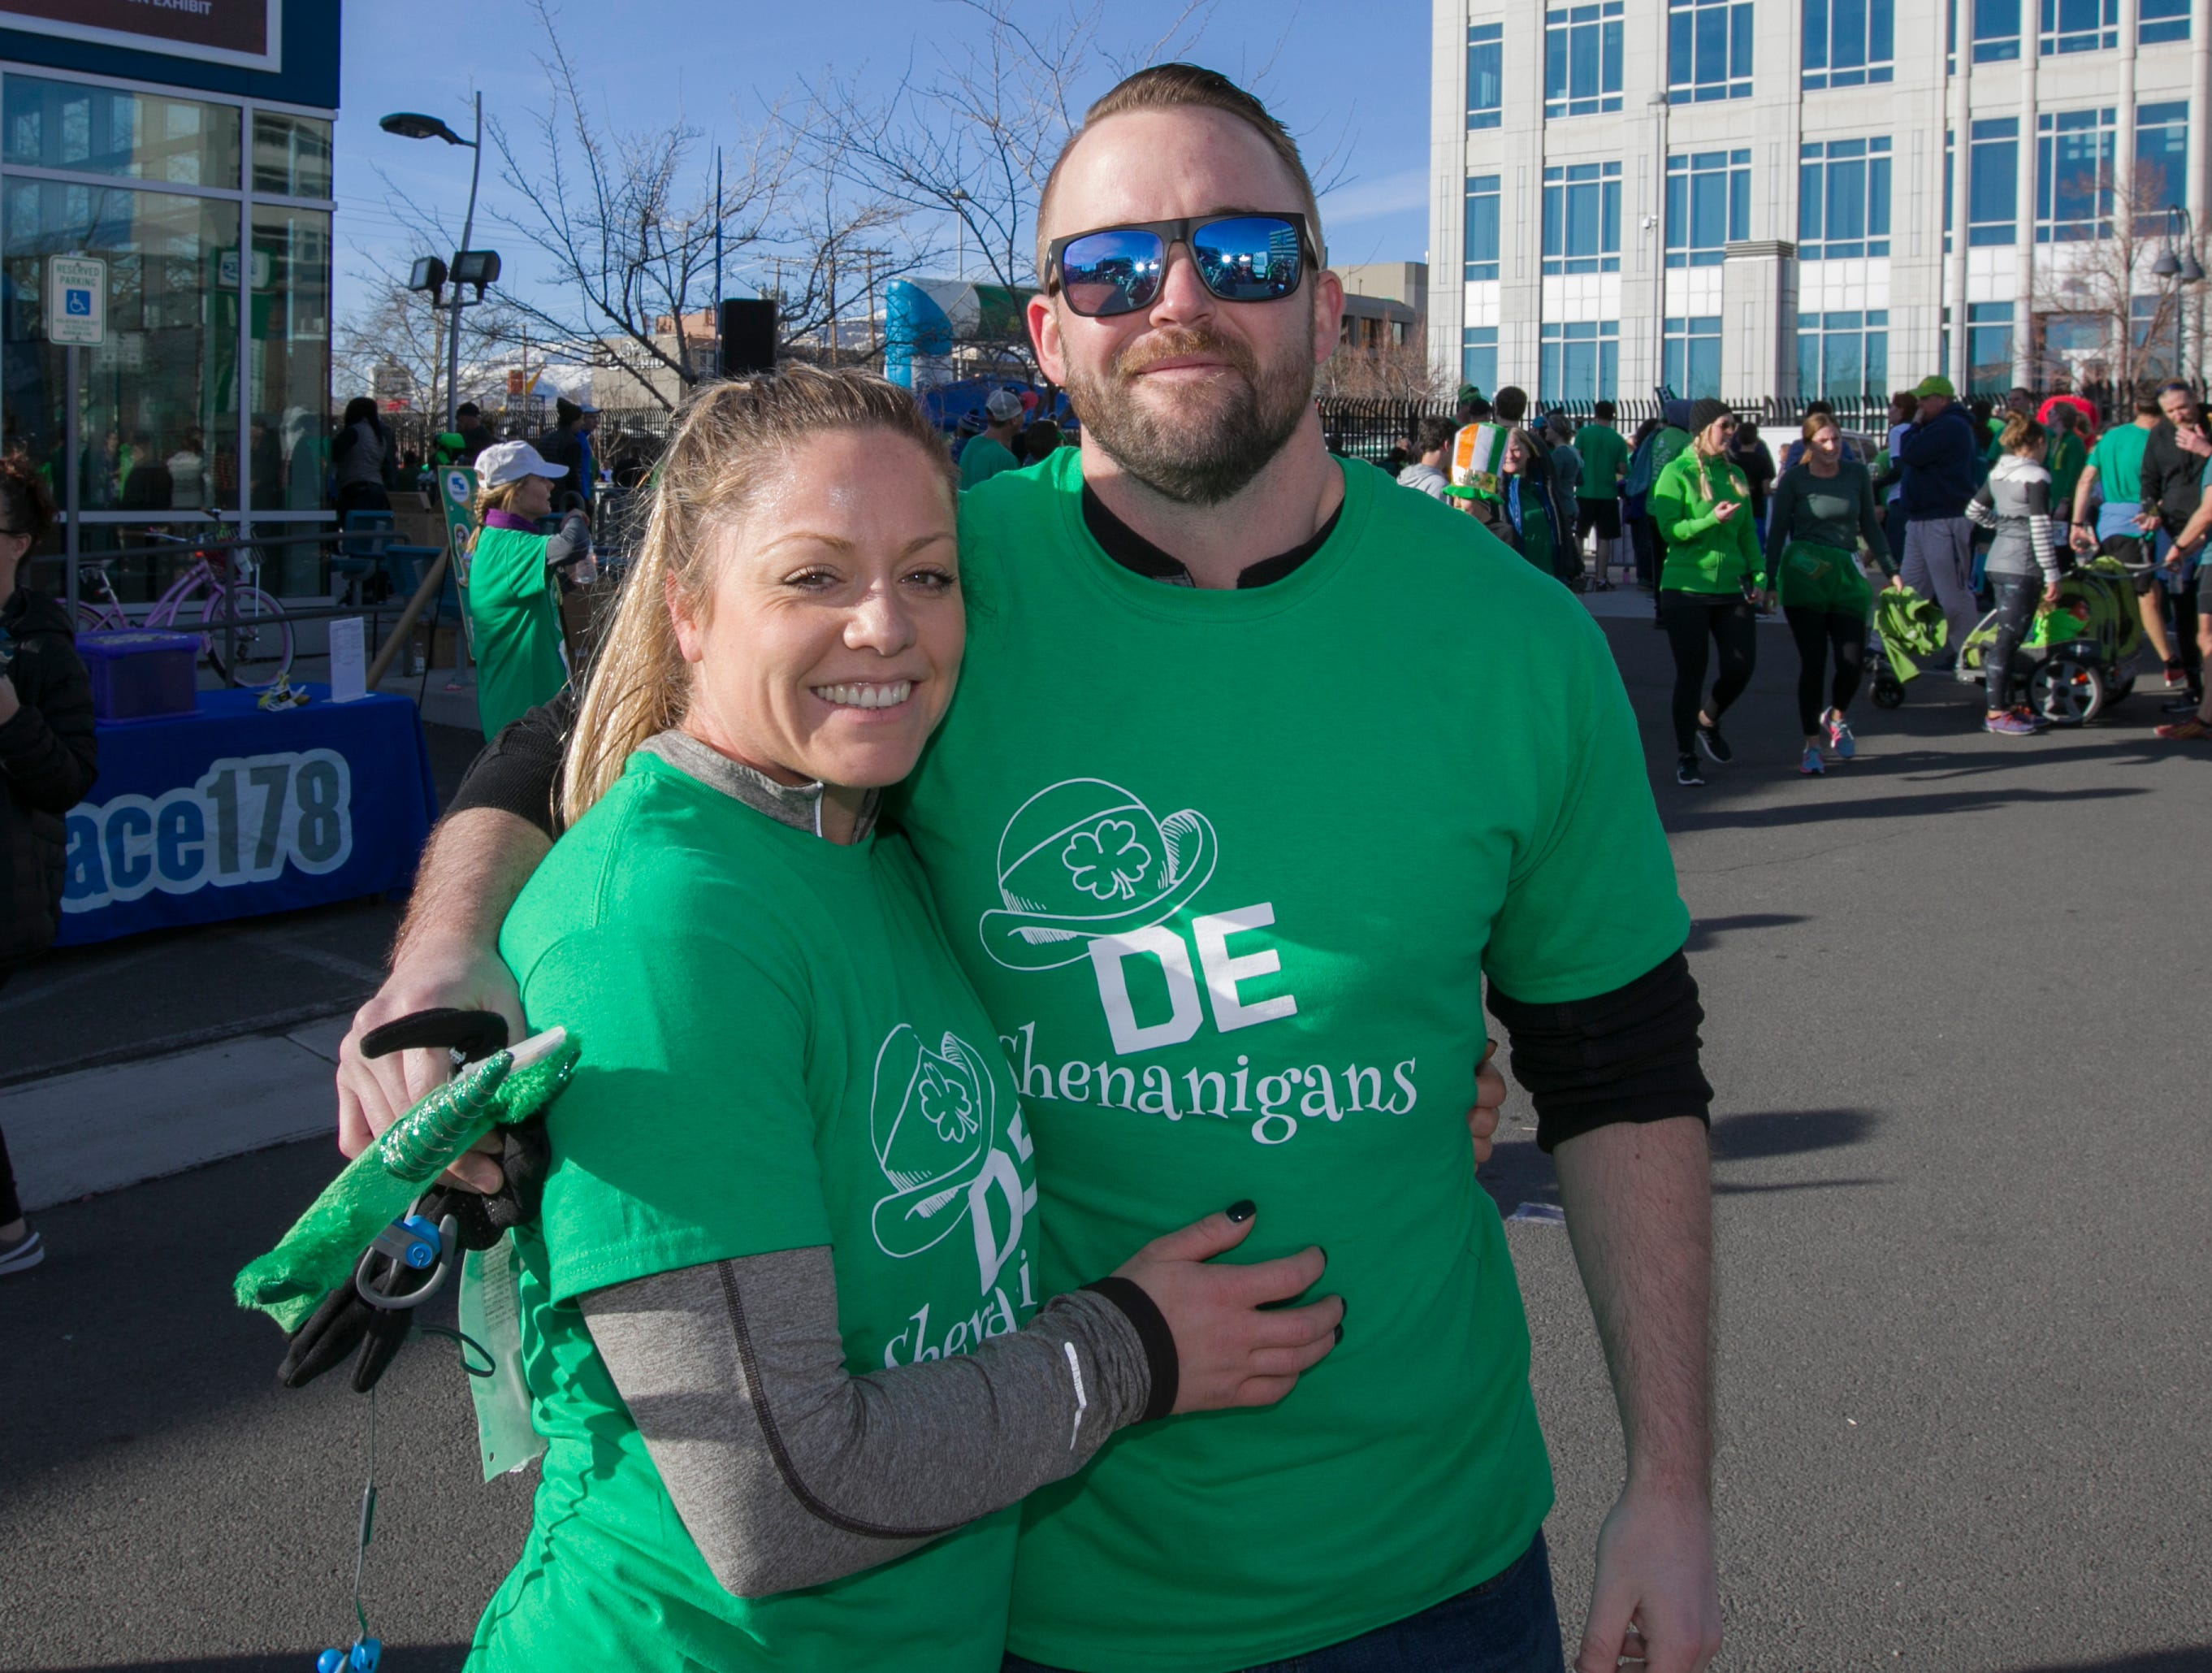 Sabrina and Scott after the 7th annual Leprechaun Race in downtown Reno, Nevada on Sunday, March 17, 2019.